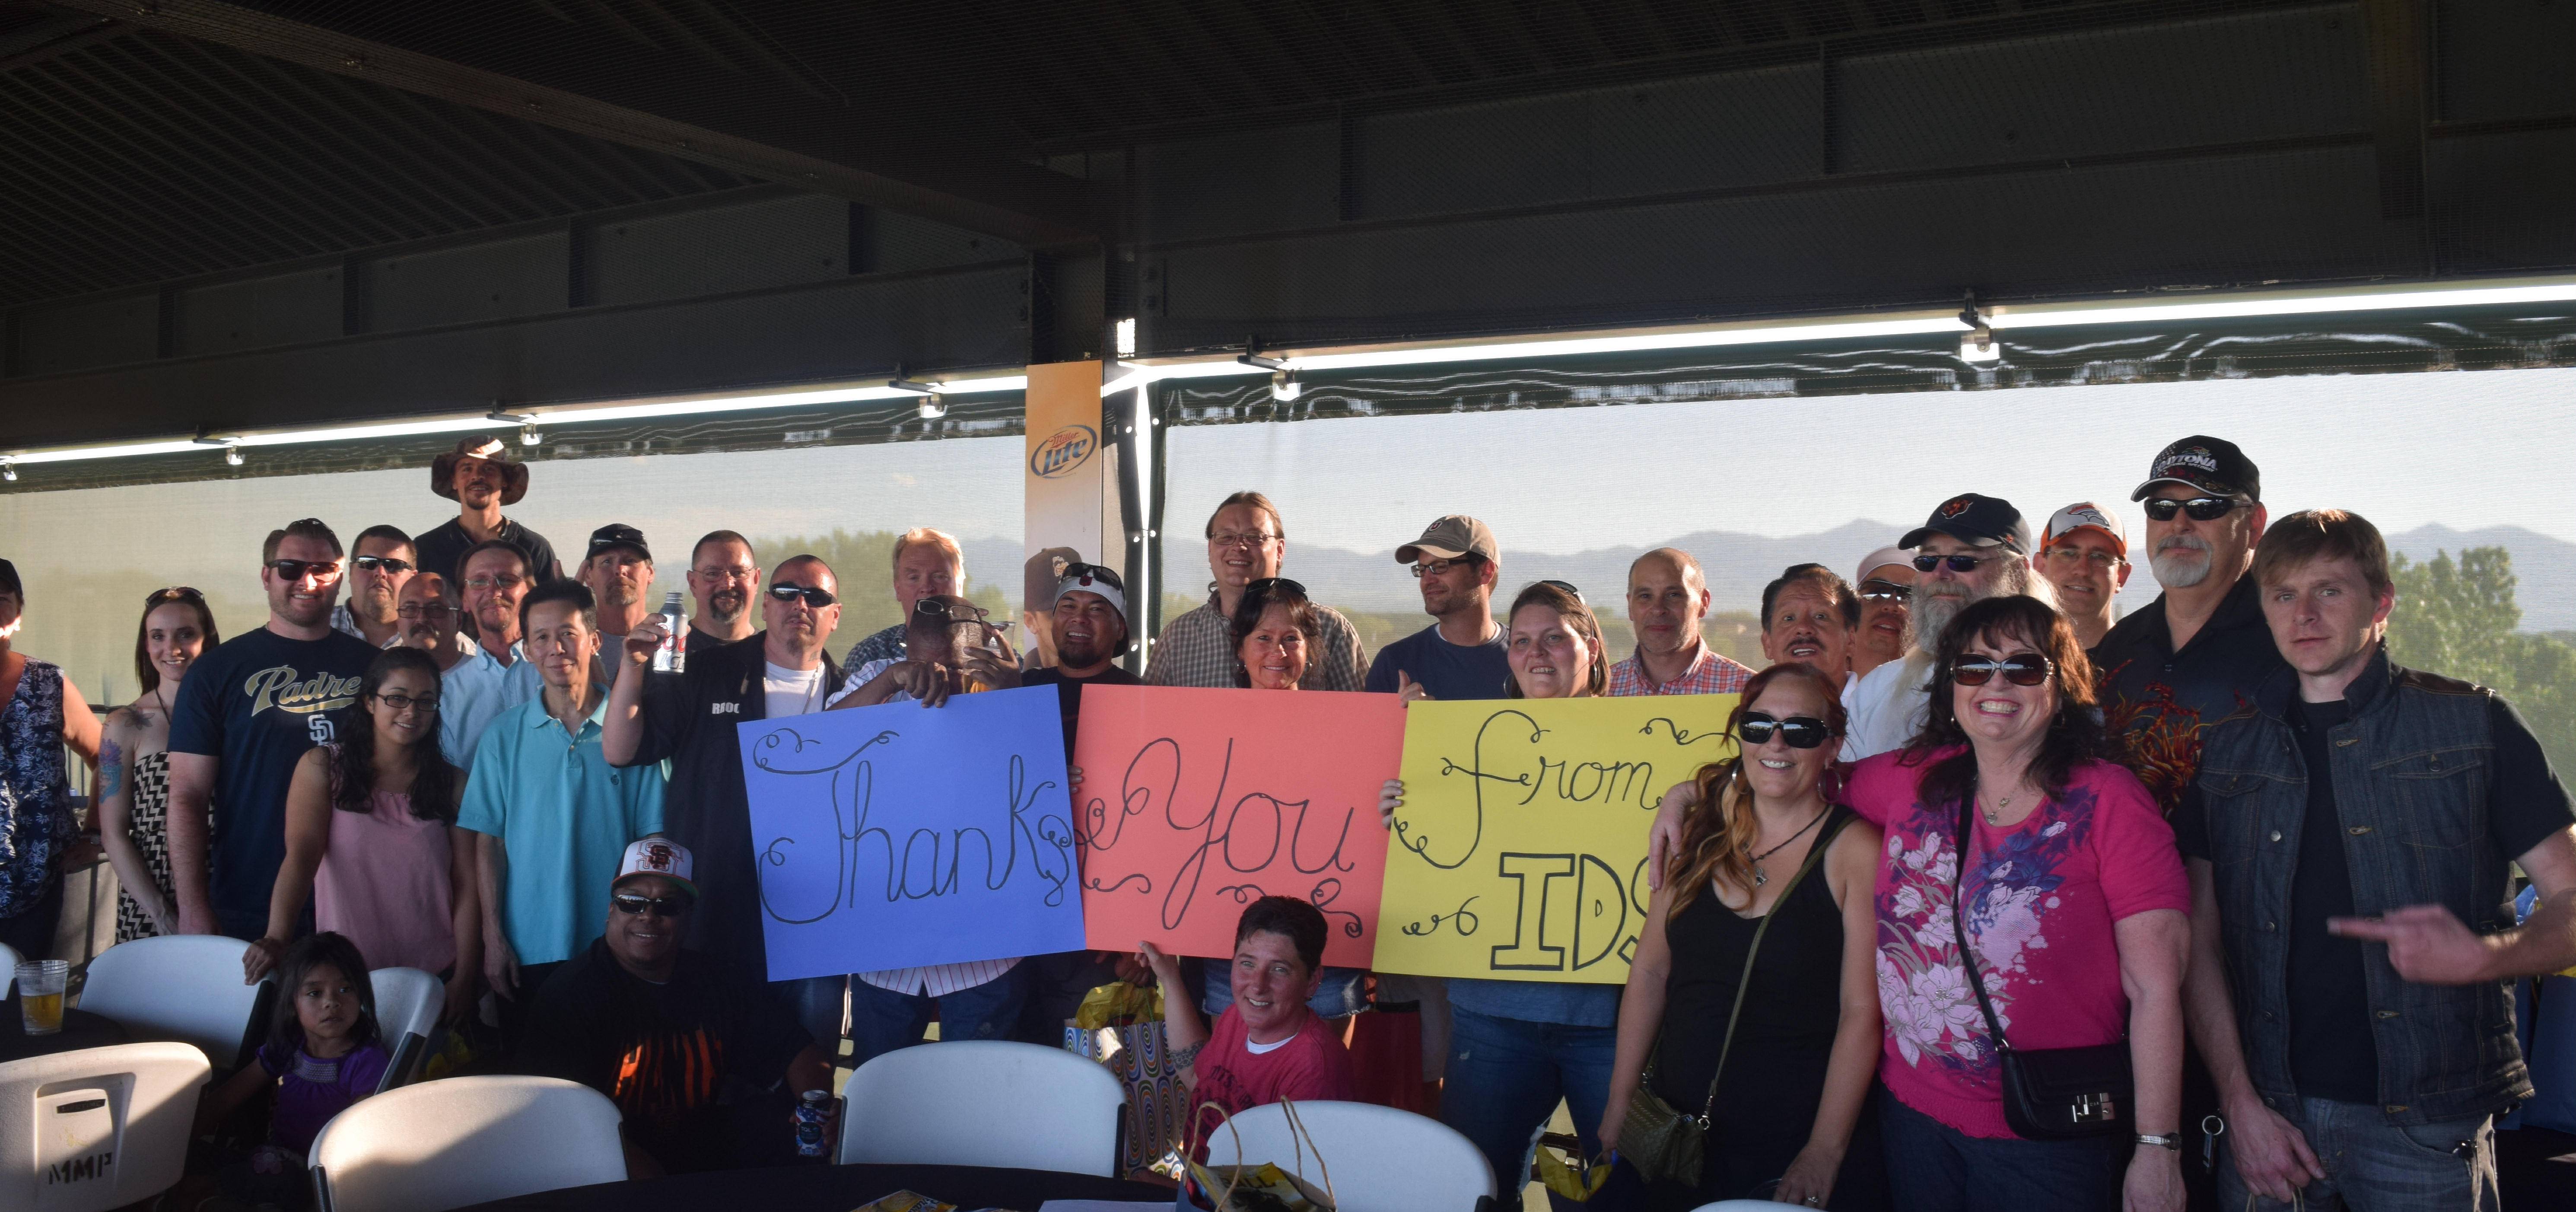 SLC_company_outing_THANK_YOU_sign_2015